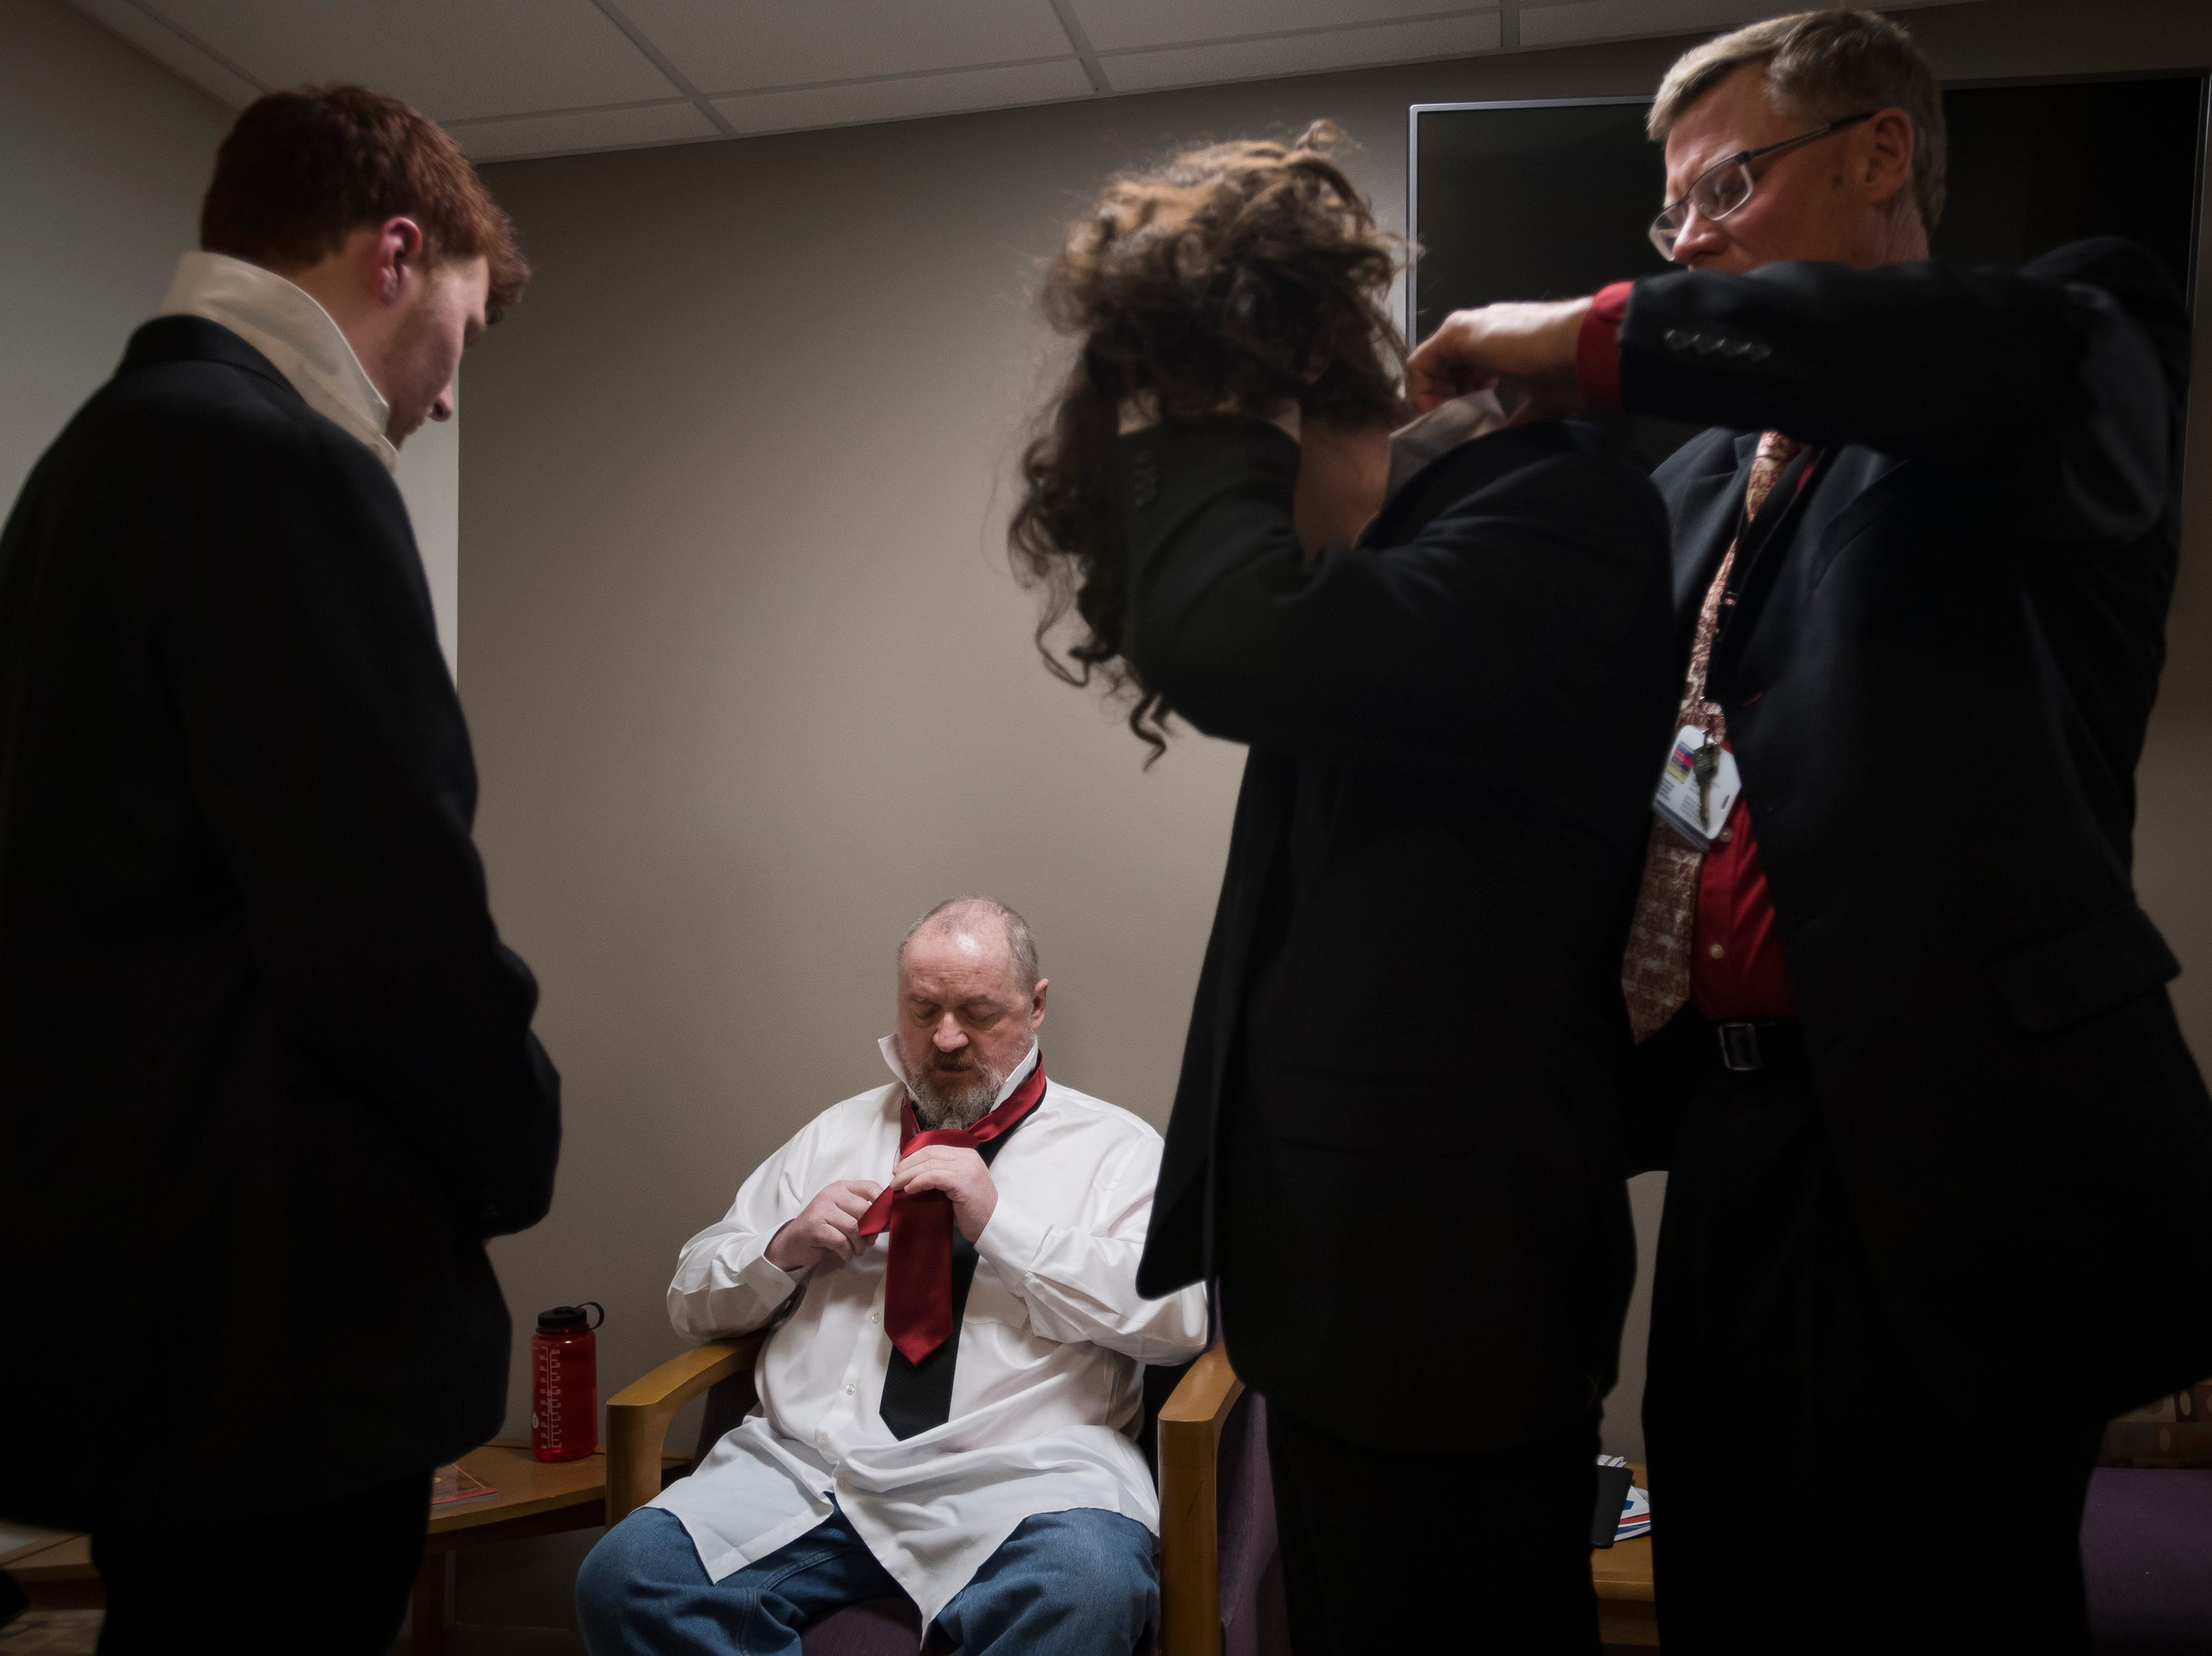 """From left, groom James """"Christian"""" Christian, father of the bride Paul Justice, brother of the bride Dean Justice, and chaplain Terry Skov get ready for a wedding on Thursday, Feb. 14, 2019, at UCHealth Poudre Valley Hospital in Fort Collins, Colo."""